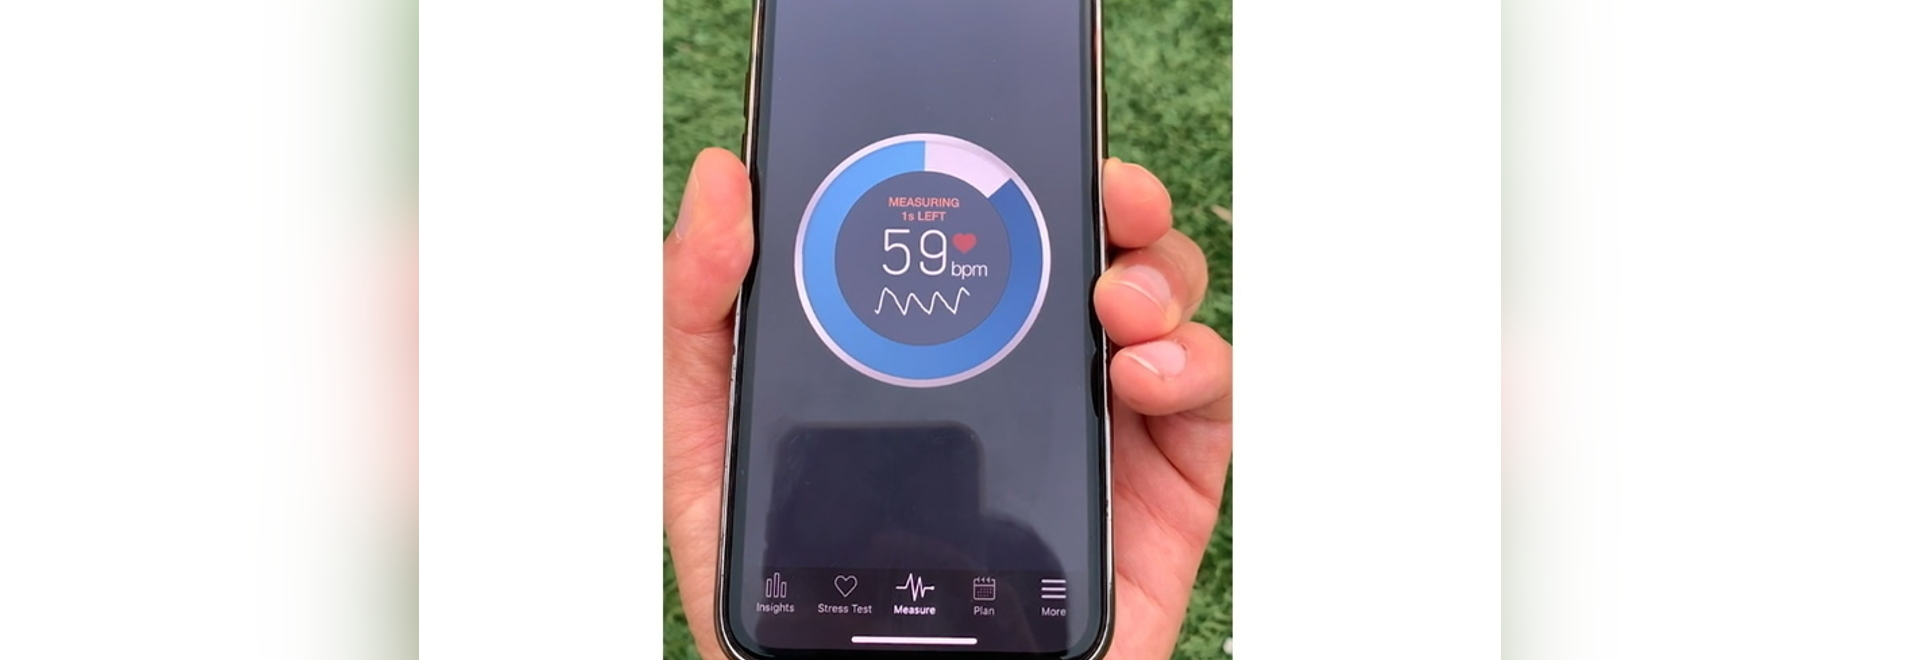 Smartphone App And Deep Learning Help Detect Diabetes